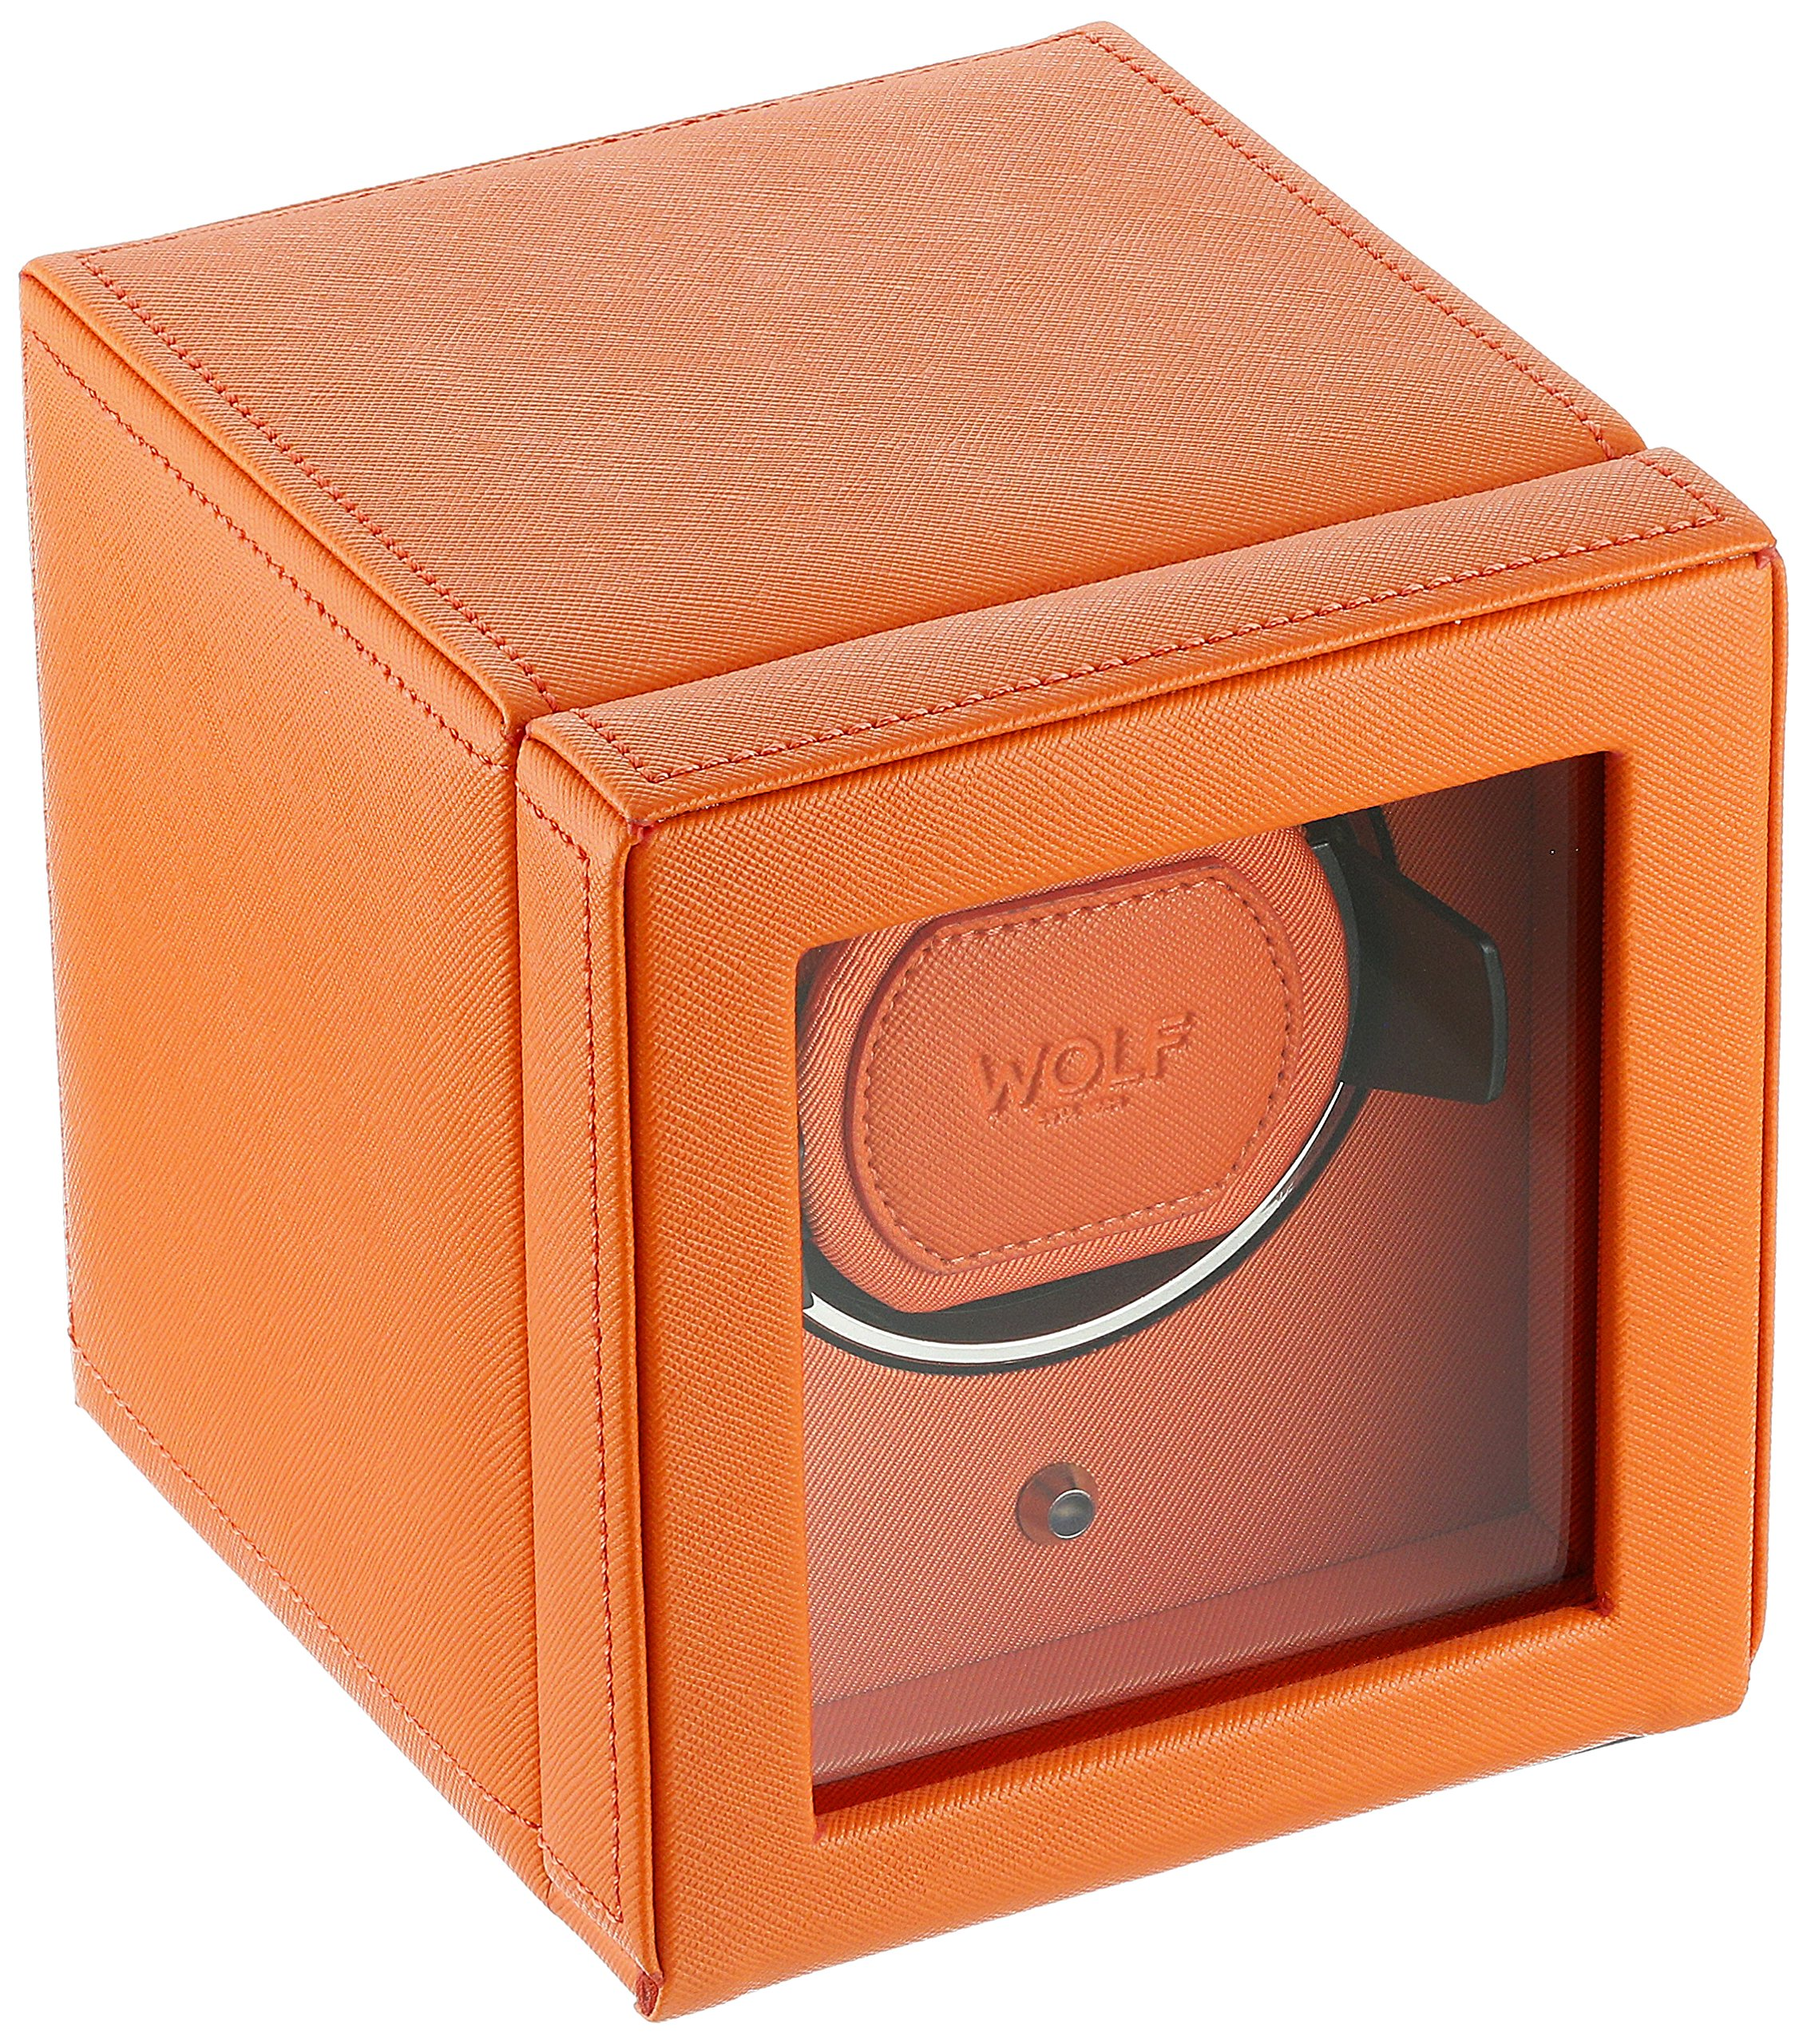 WOLF 461139 Cub Single Watch Winder with Cover, Orange by WOLF